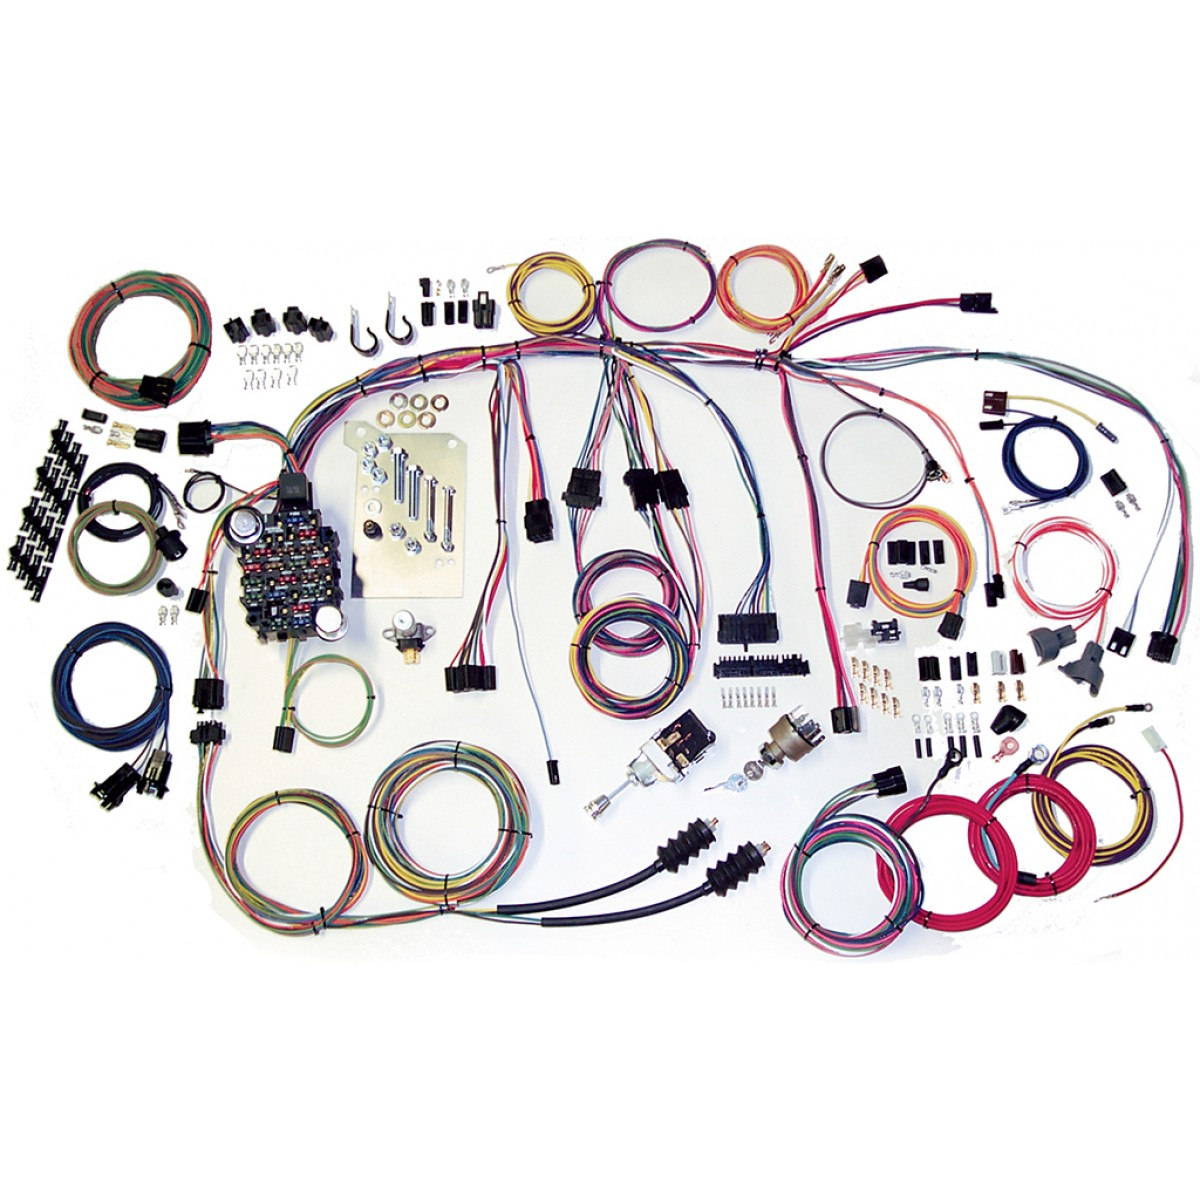 1960 C10 Wiring Harness Electronic Diagrams Chevy Truck Horn Complete Kit 1966 Guide